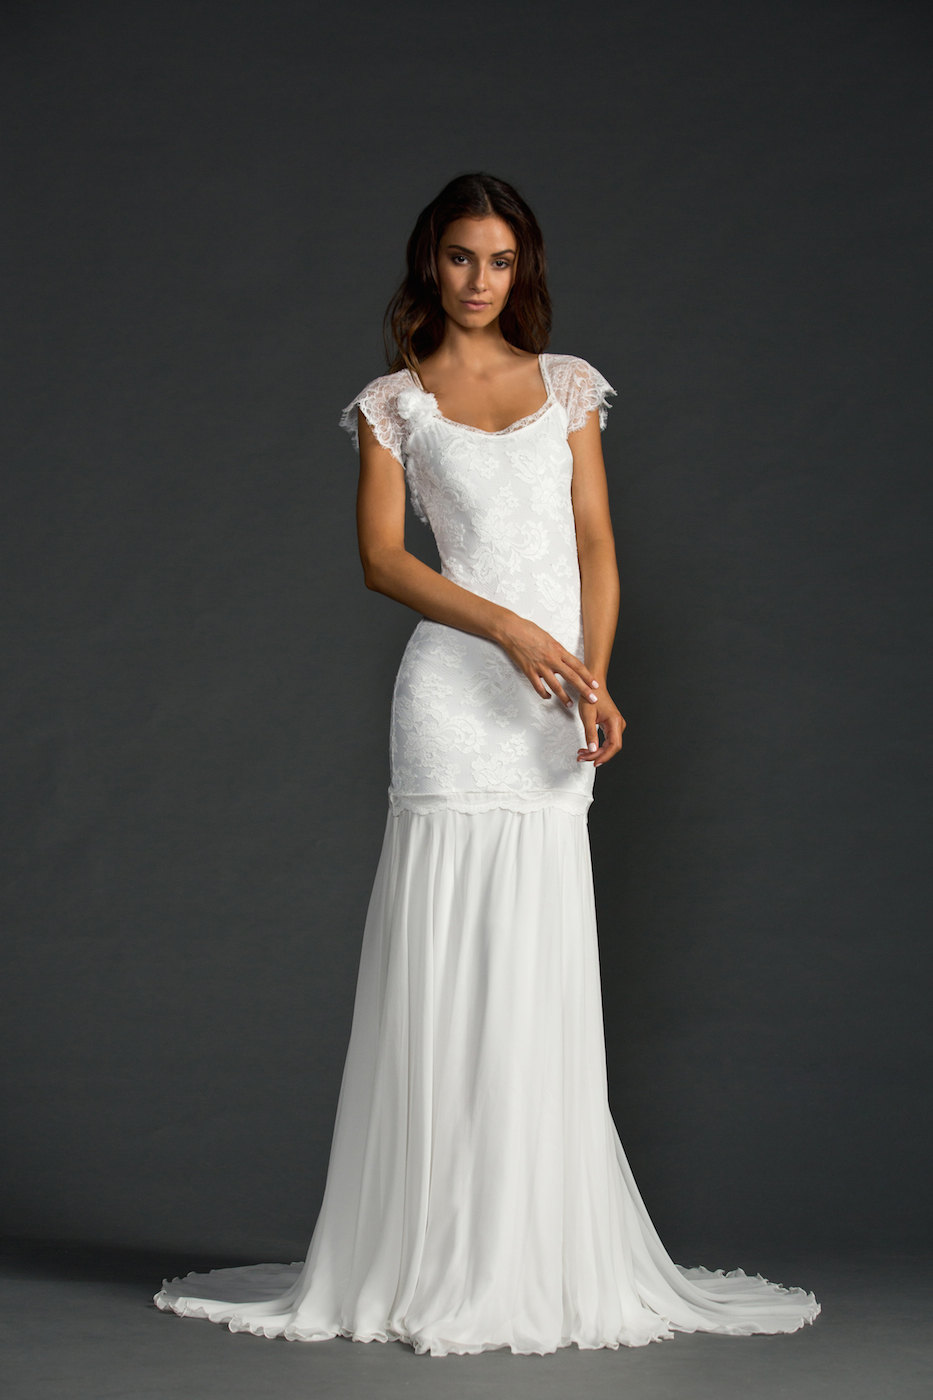 Boho Wedding Dress From Grace Loves Lace